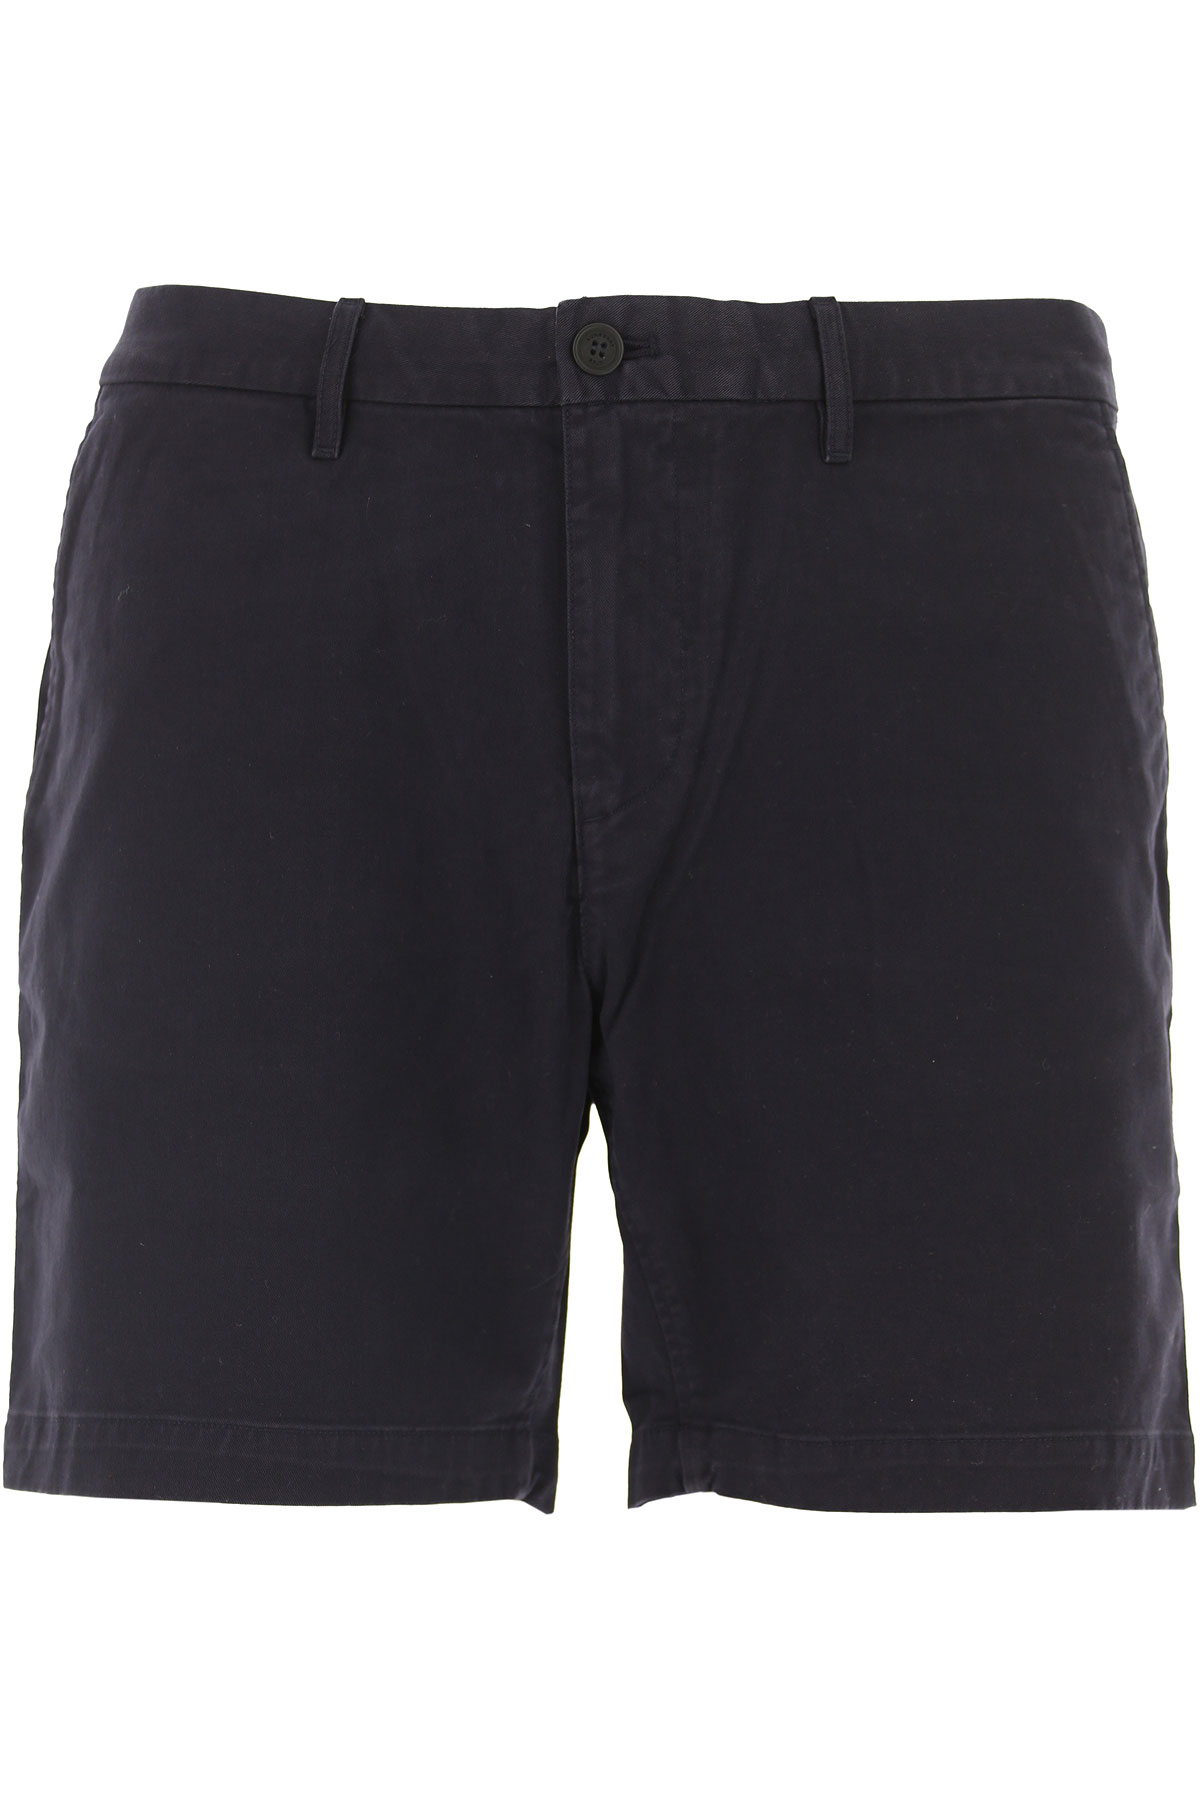 Image of Burberry Shorts for Men On Sale in Outlet, Blue Navy, Cotton, 2017, 40